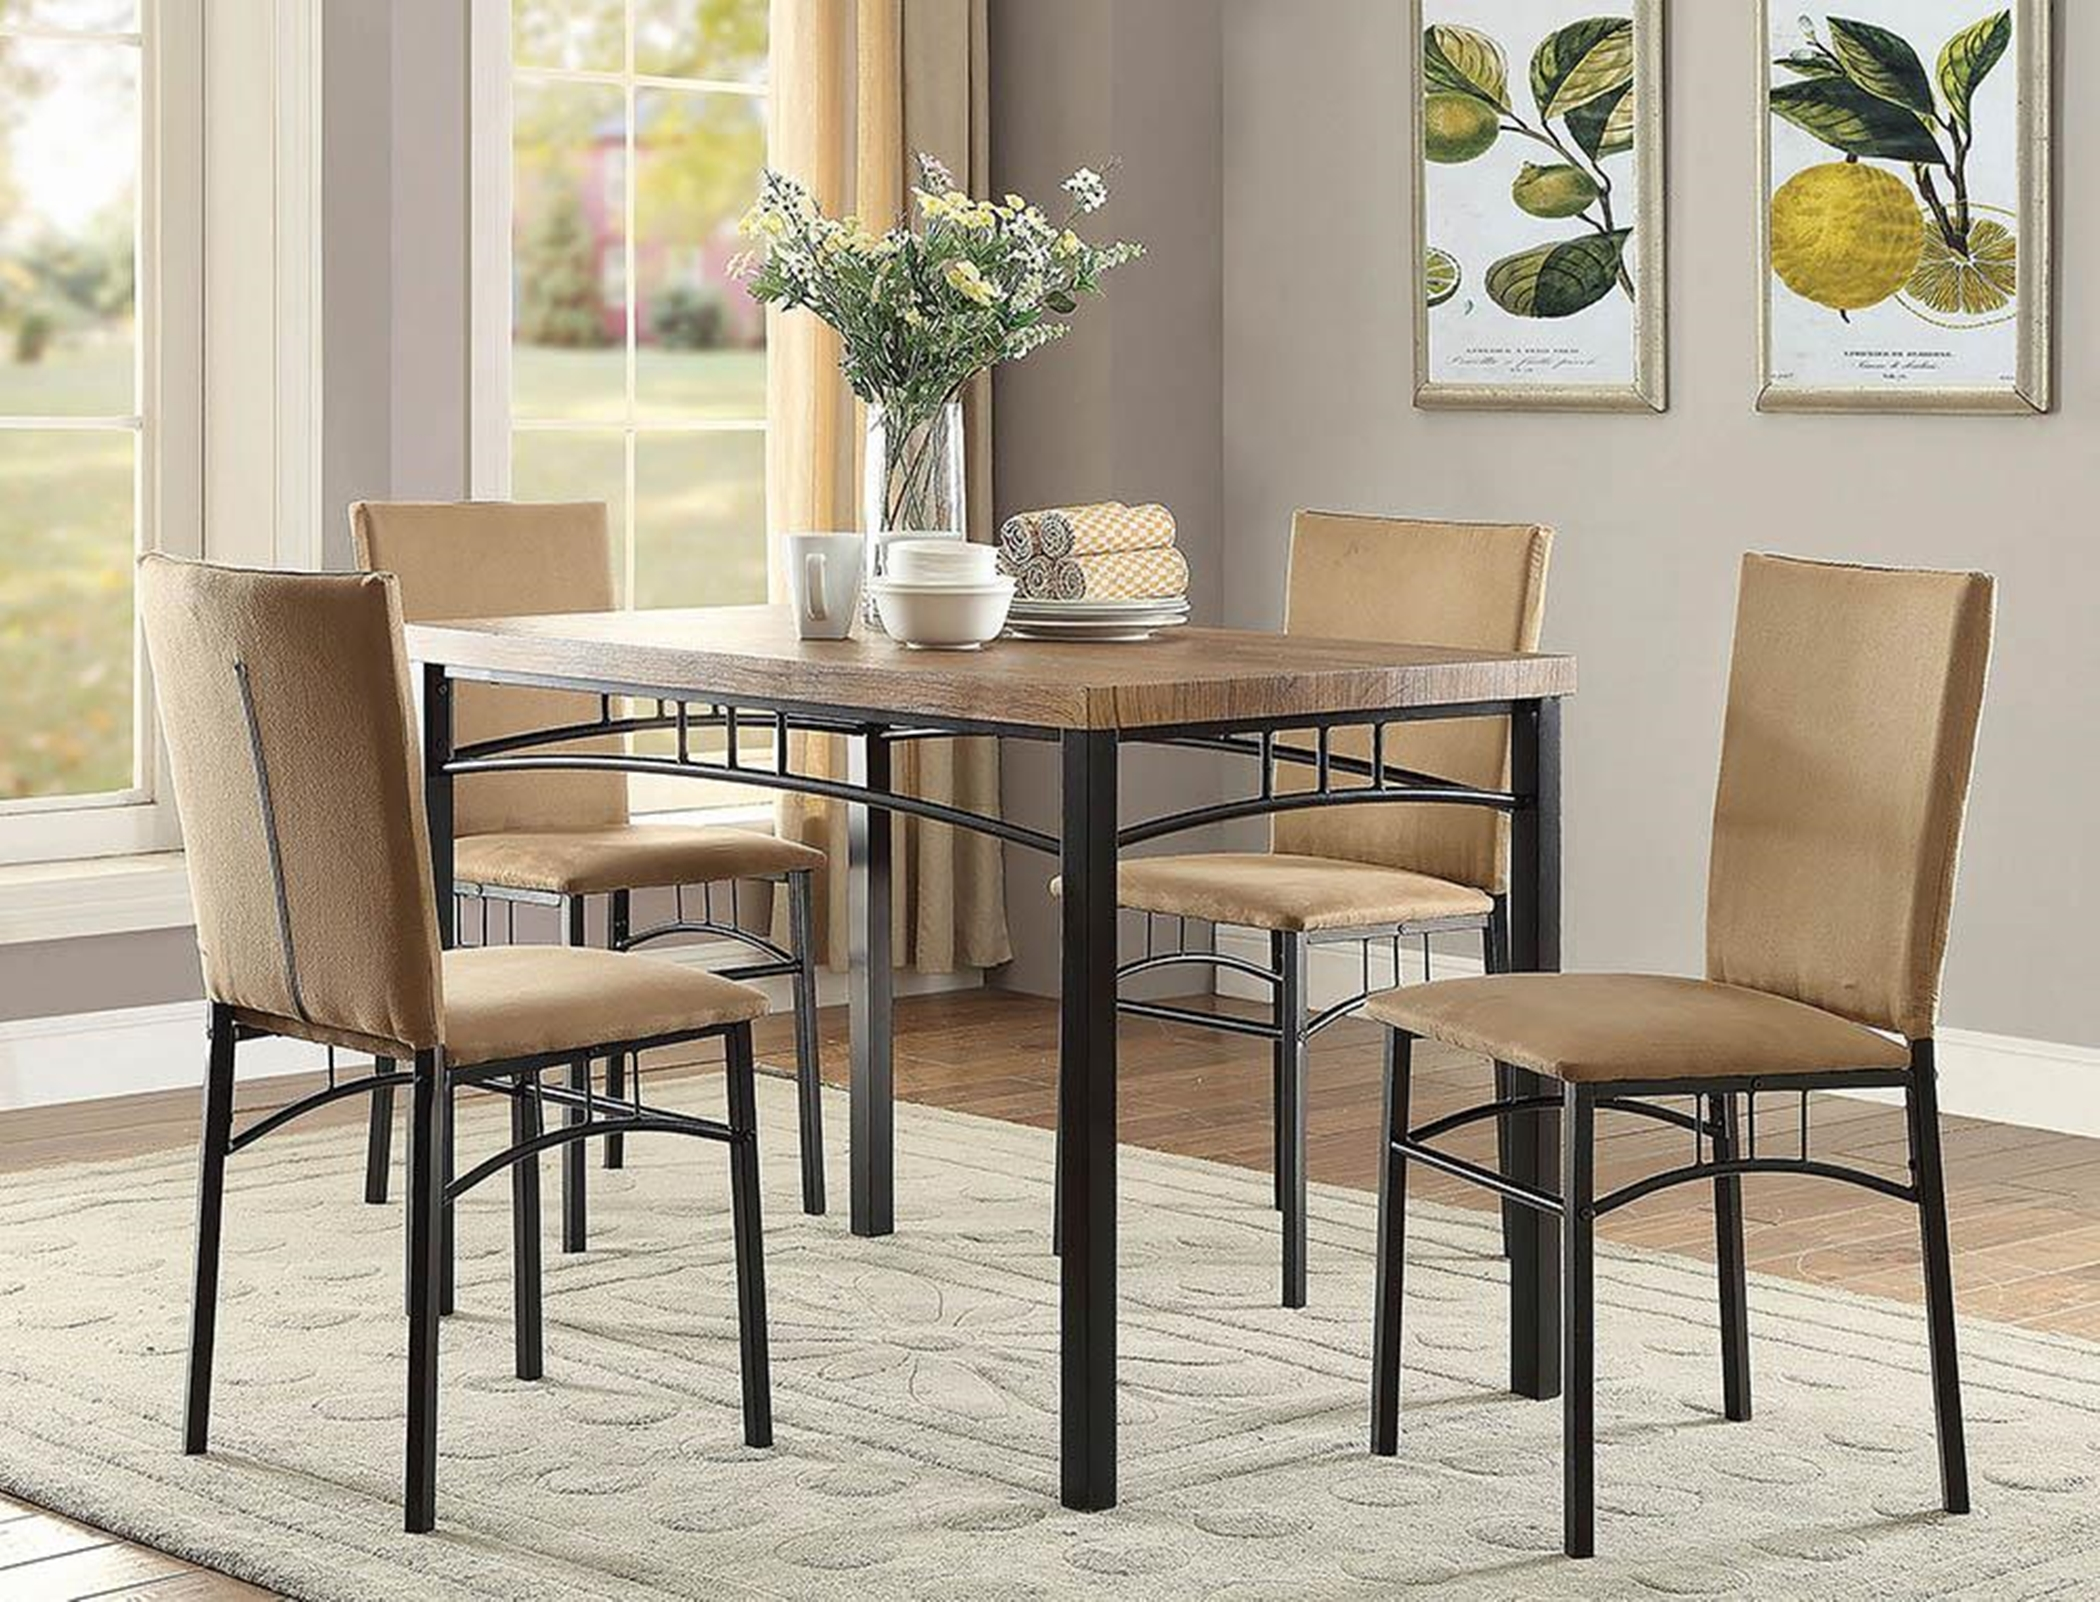 Contemporary 5-Pc. Metal Dinette Set